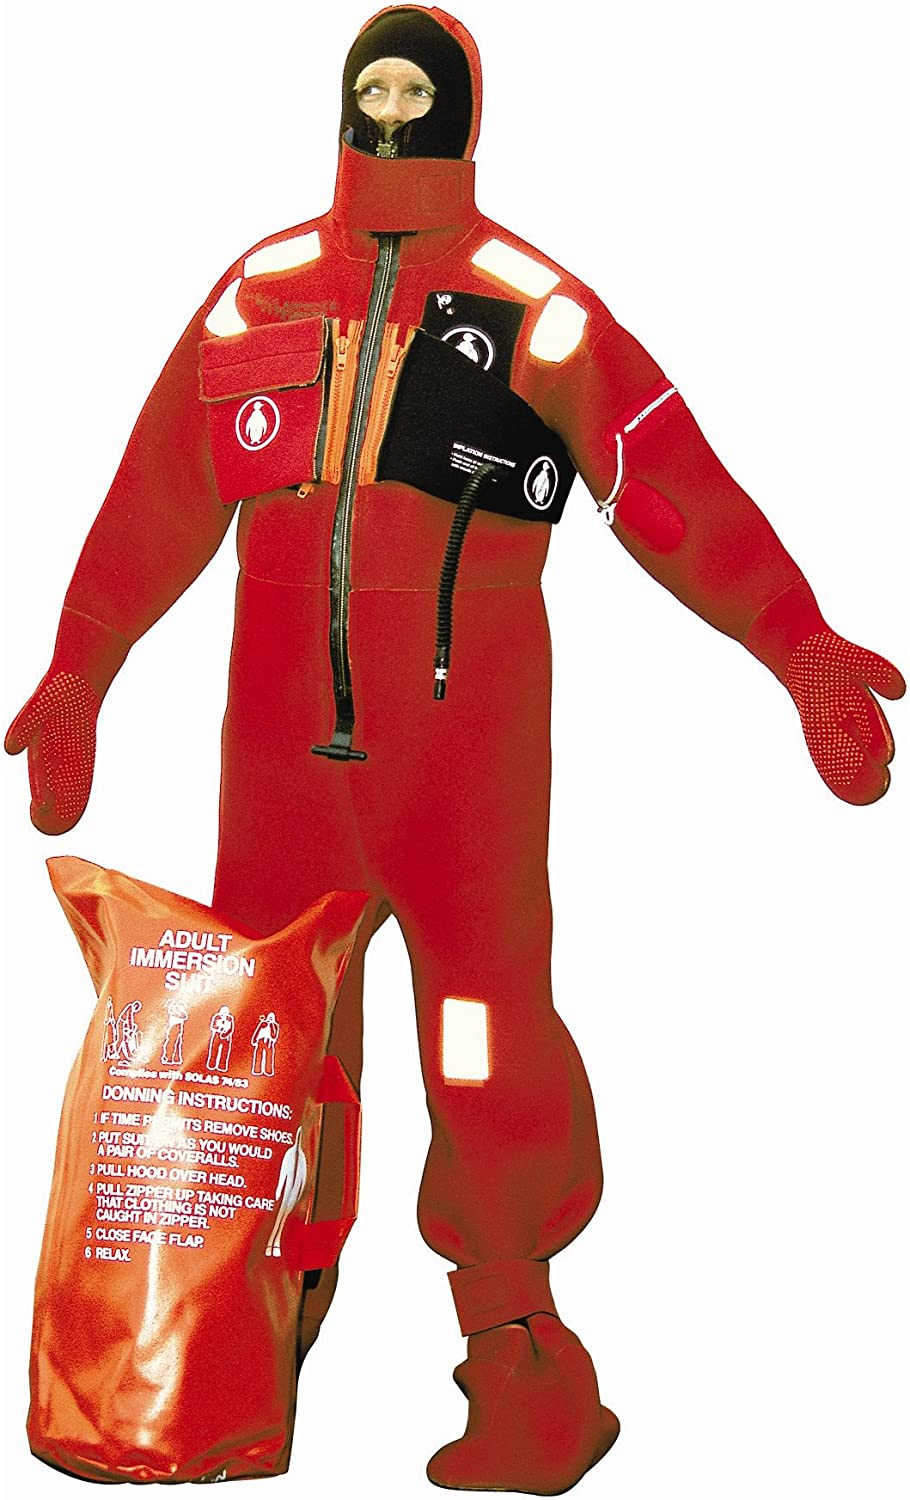 Revere Imperial Immersion Suit UNIVERSAL